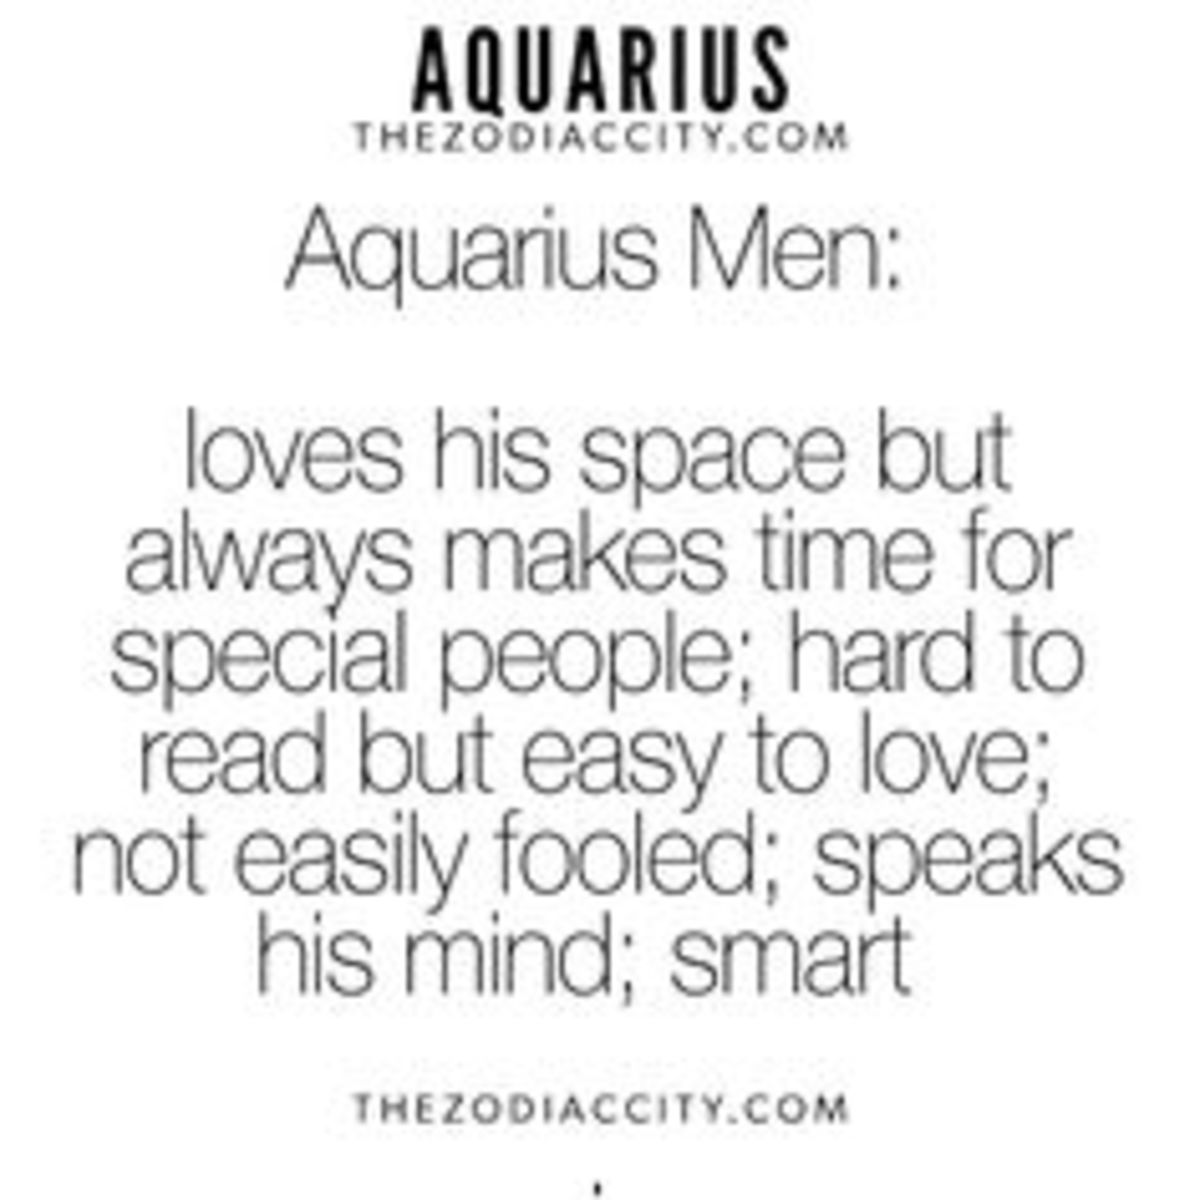 Aquarius Woman and Sagittarius Man Relationship Tendencies